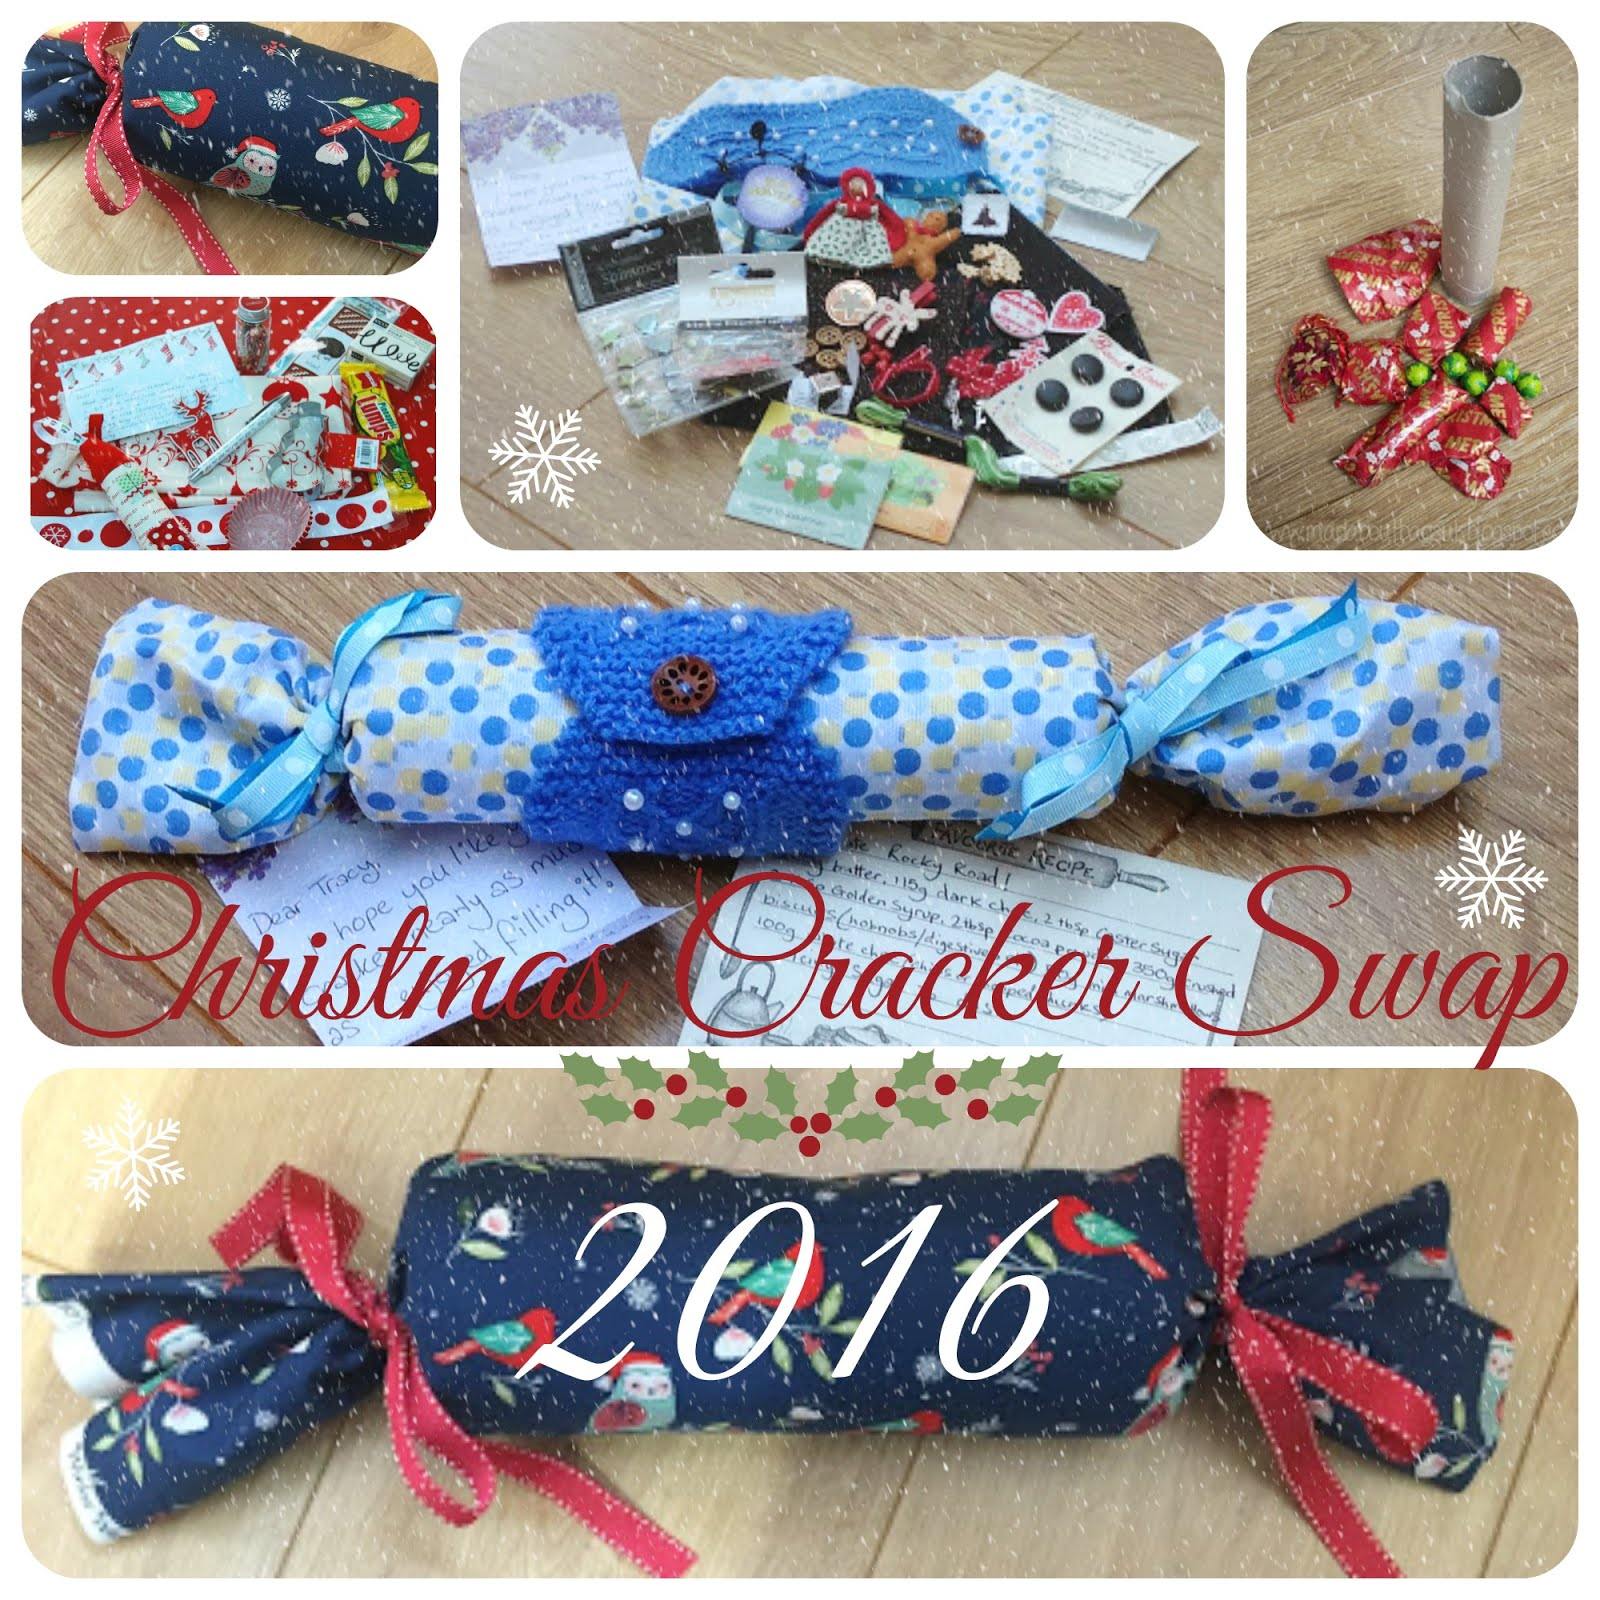 Cracker Swap 2016